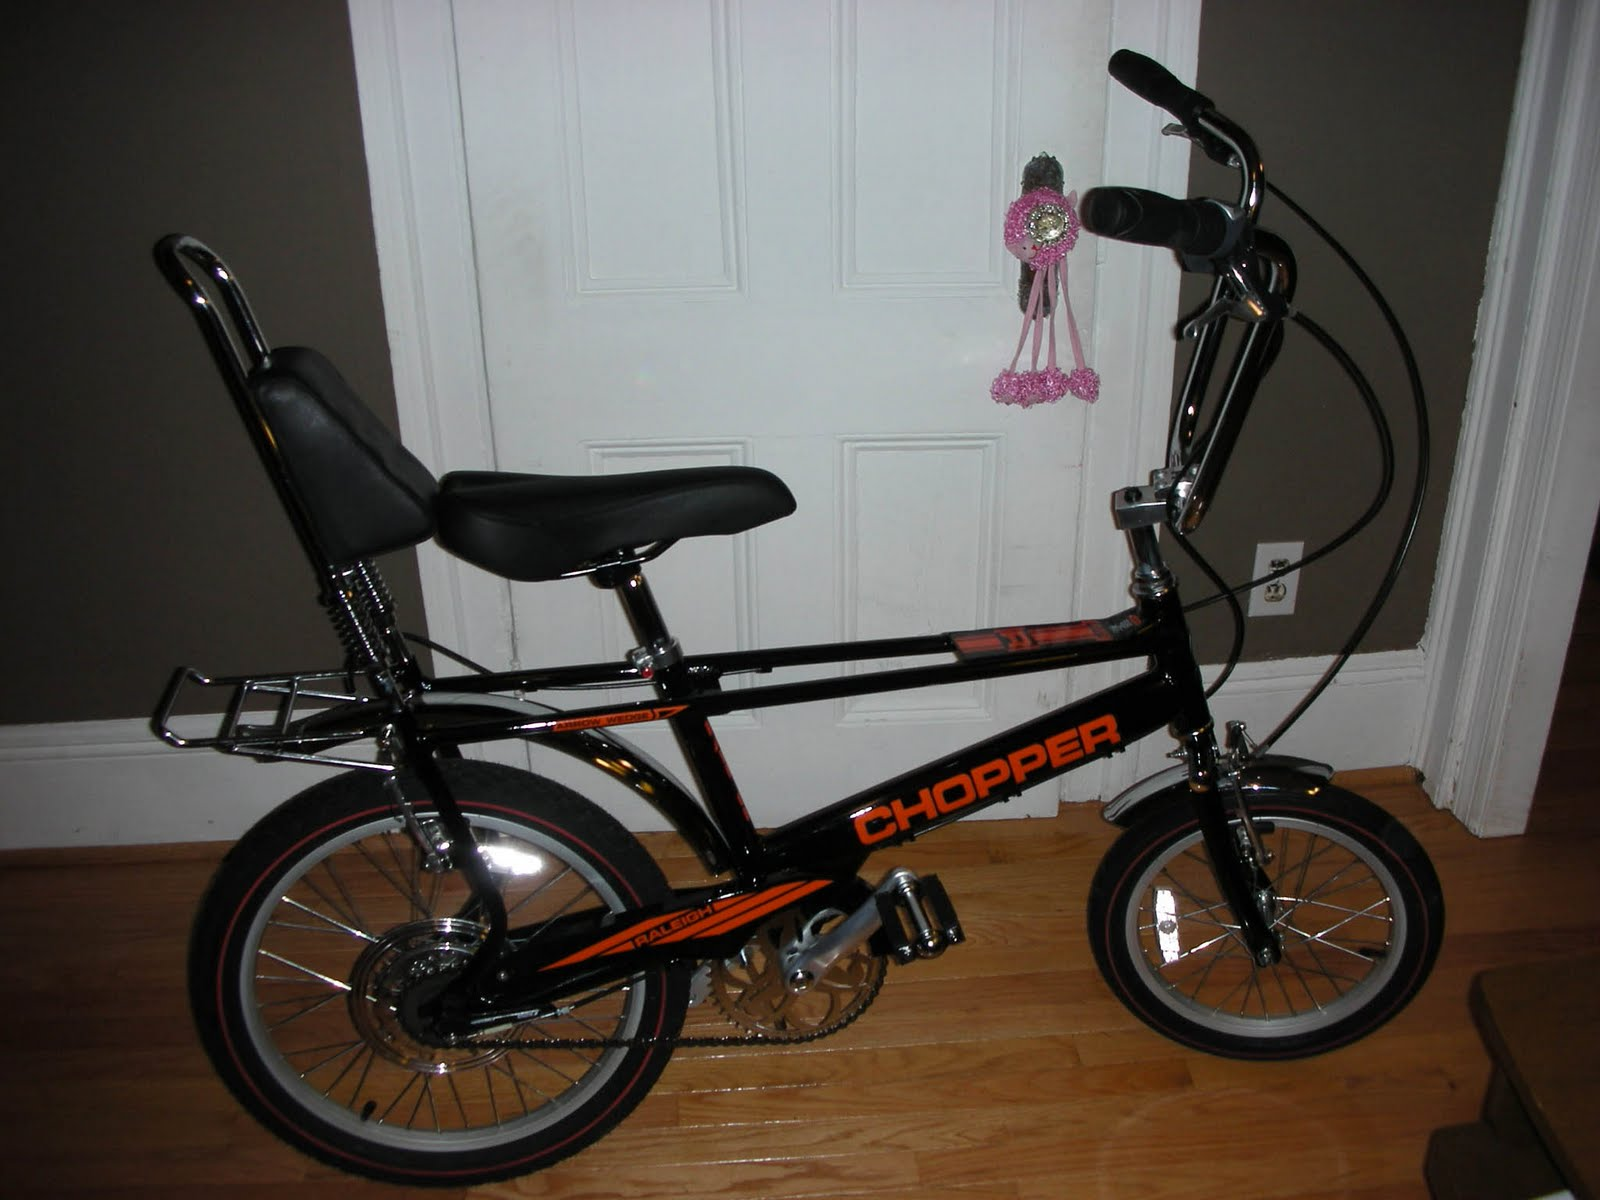 The Muscle Bike Blog: Raleigh Chopper reproduction 2004 w/ 3 speed